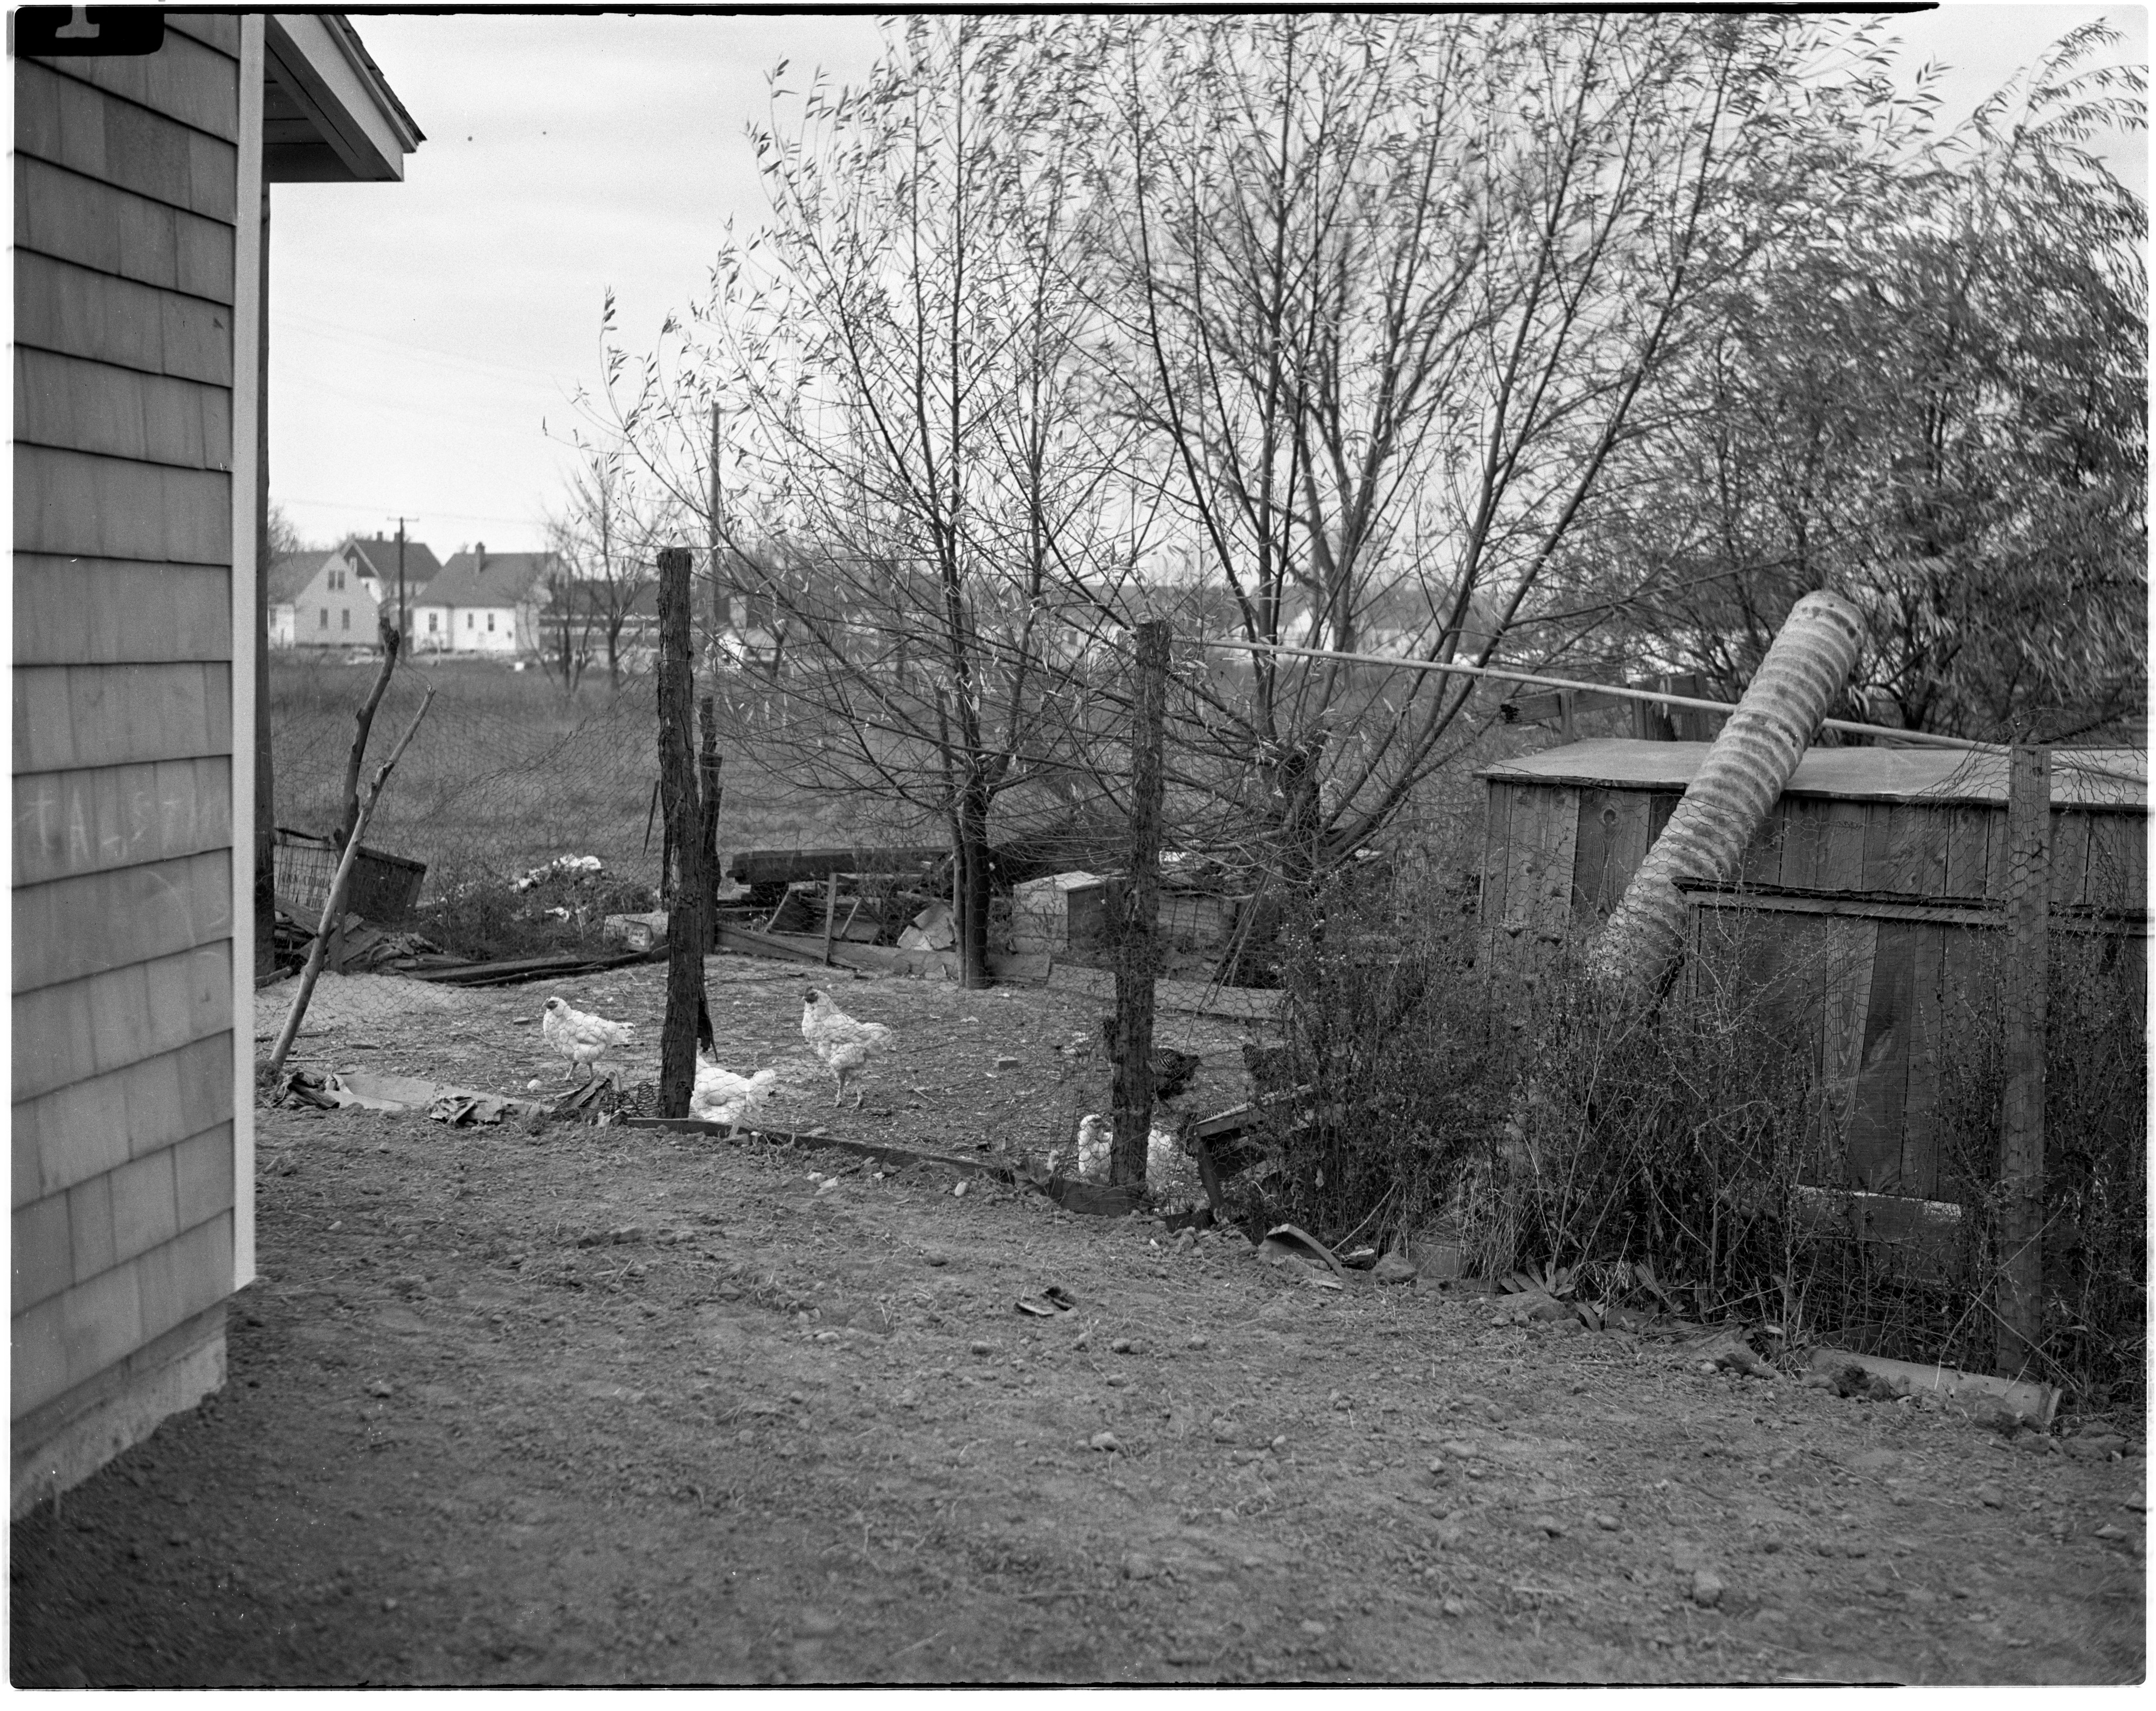 Chickens at Condemned Property in Pittsfield Village, November 1944 image